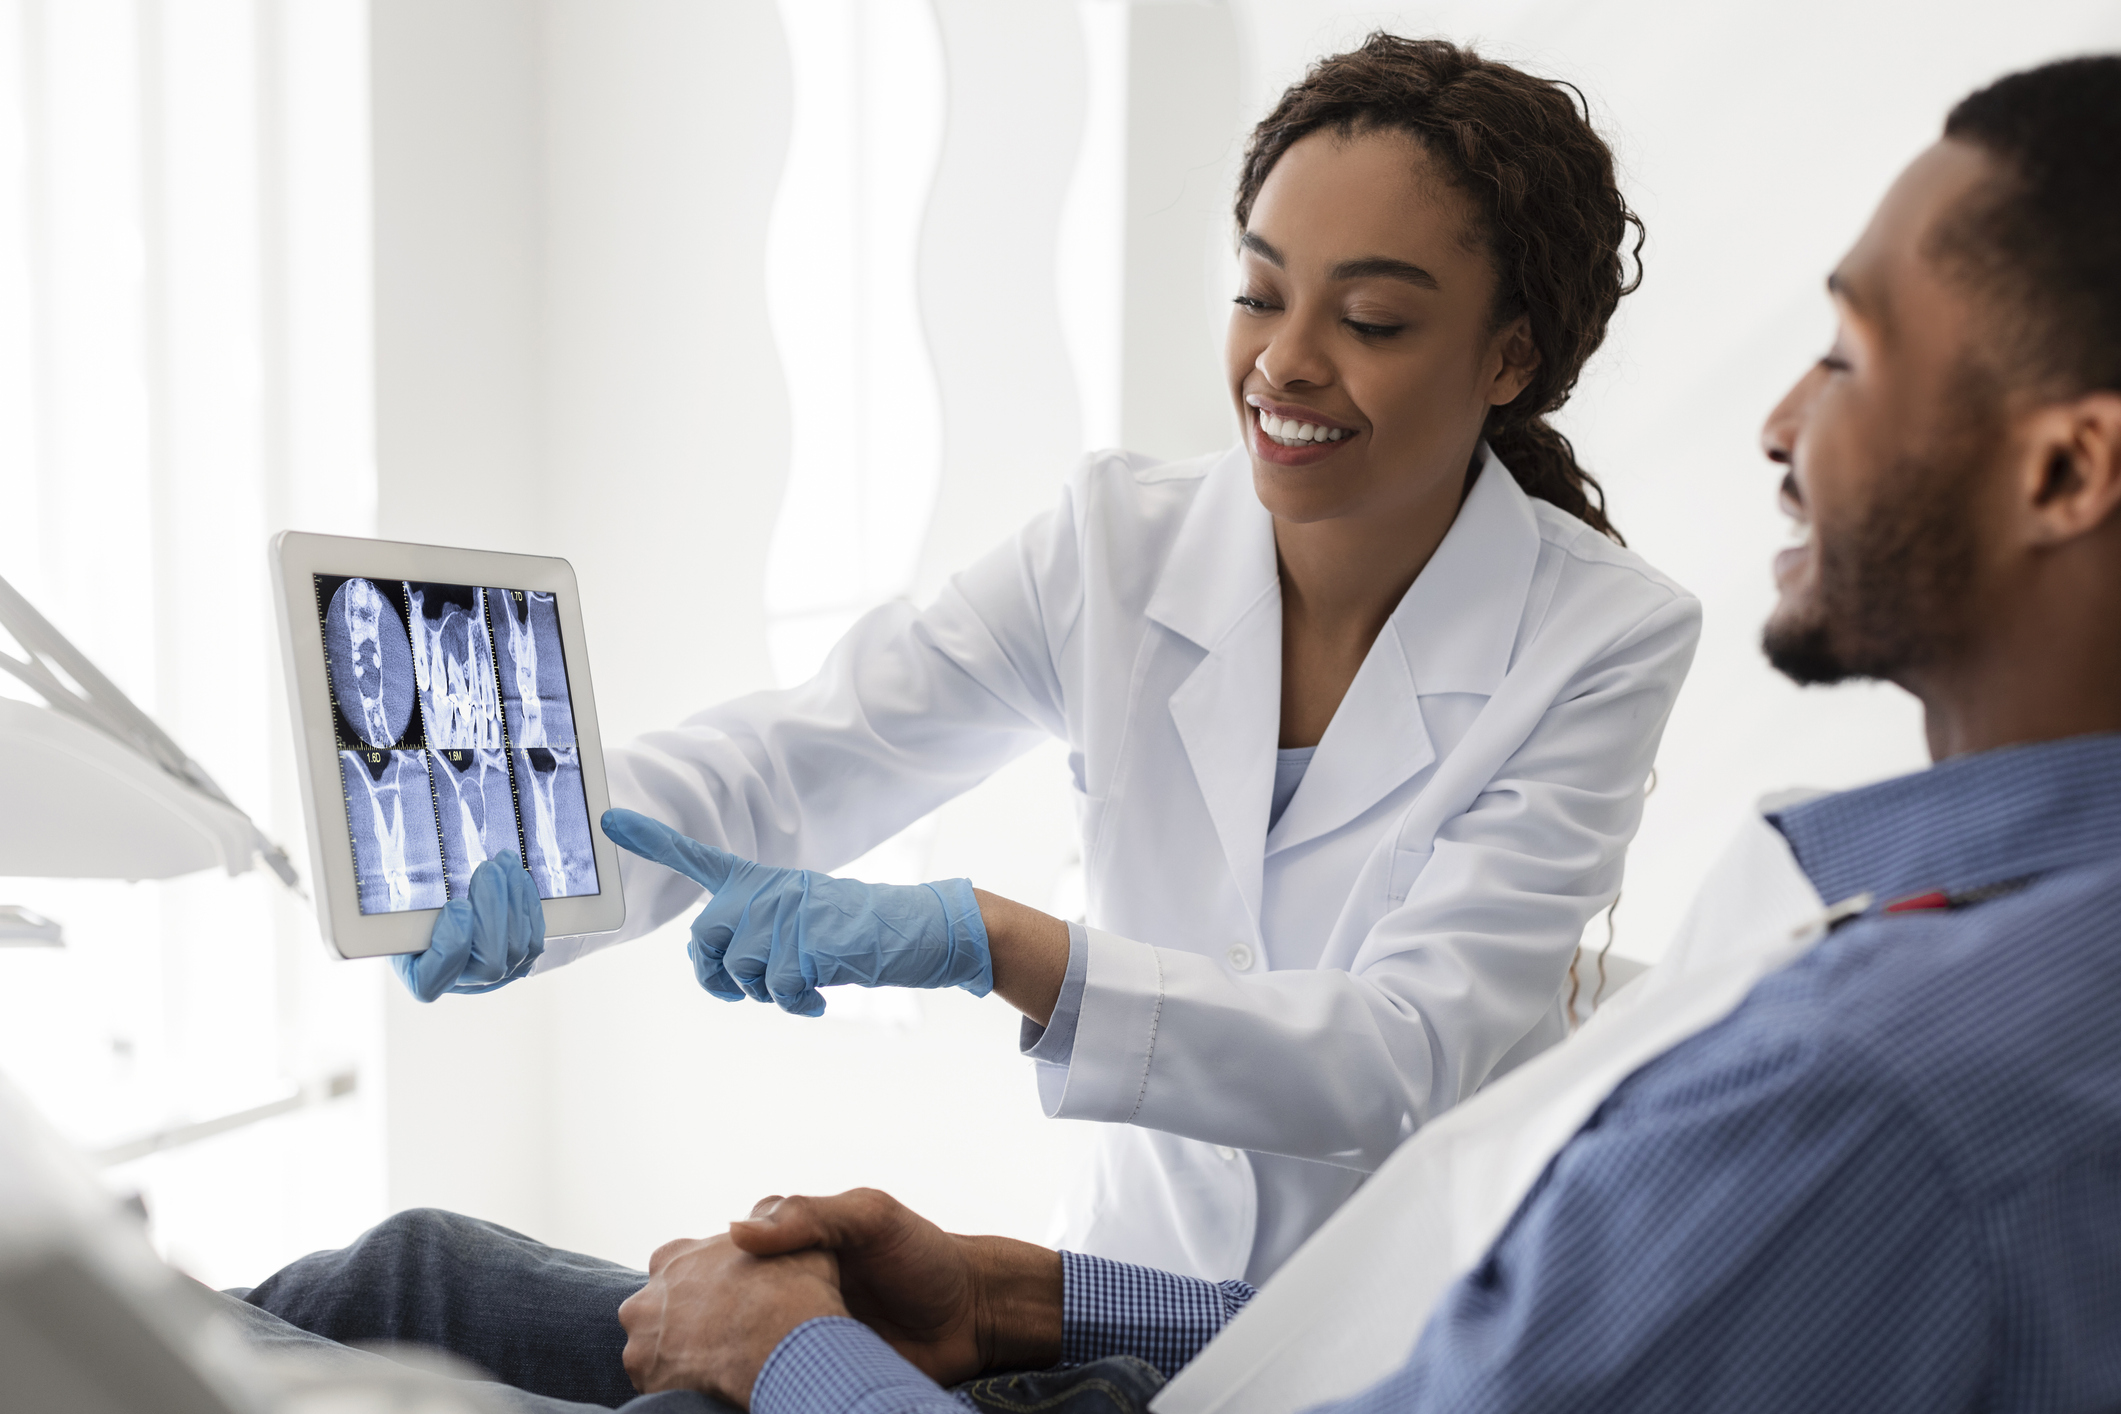 A female dentist shows dental scans on a tablet to a patient seated on a dentist's chair as part of a broader customer or patient advocacy strategy.